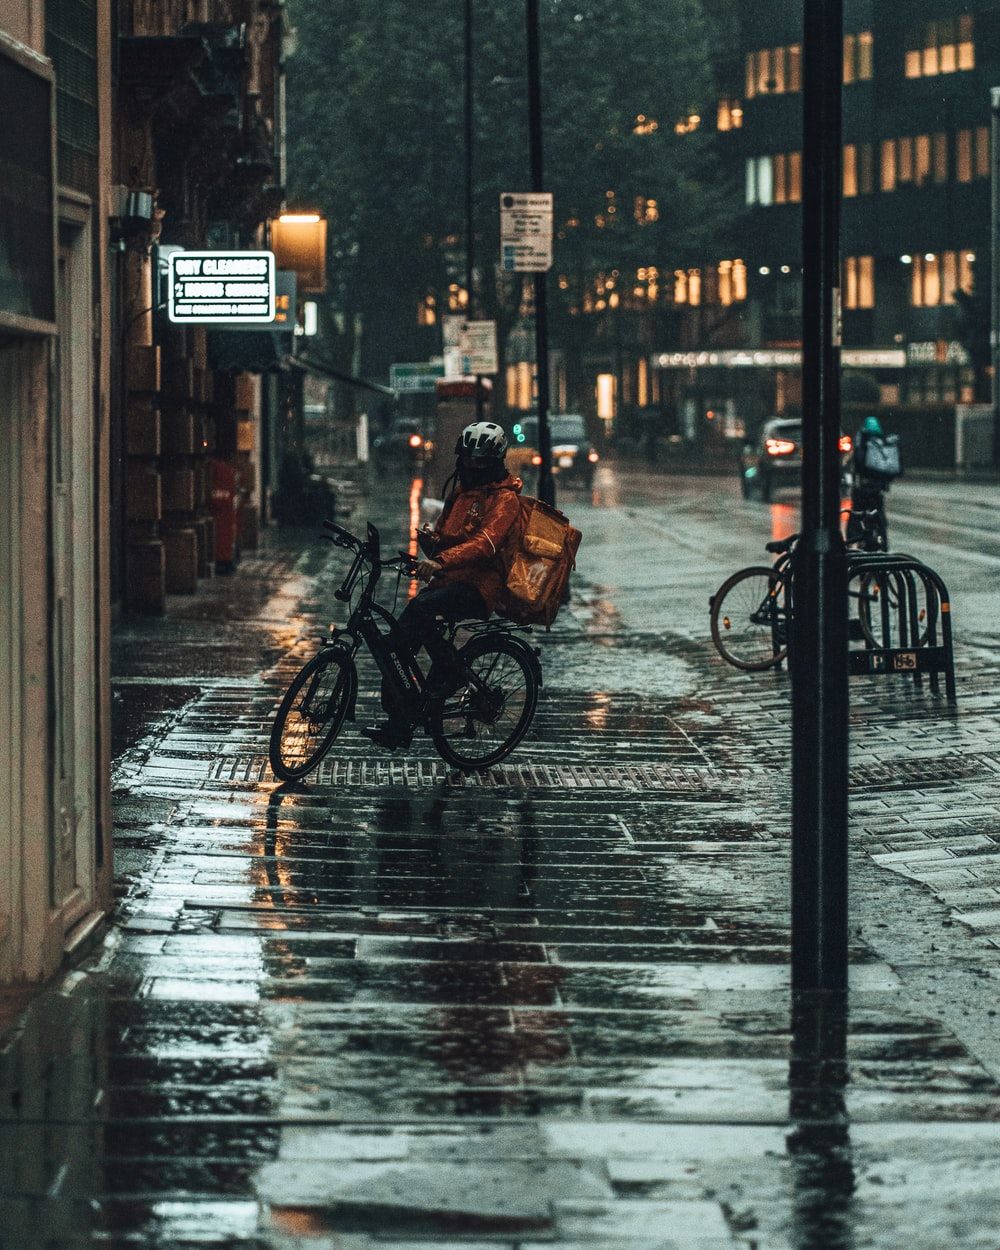 person in black jacket riding bicycle on sidewalk during daytime